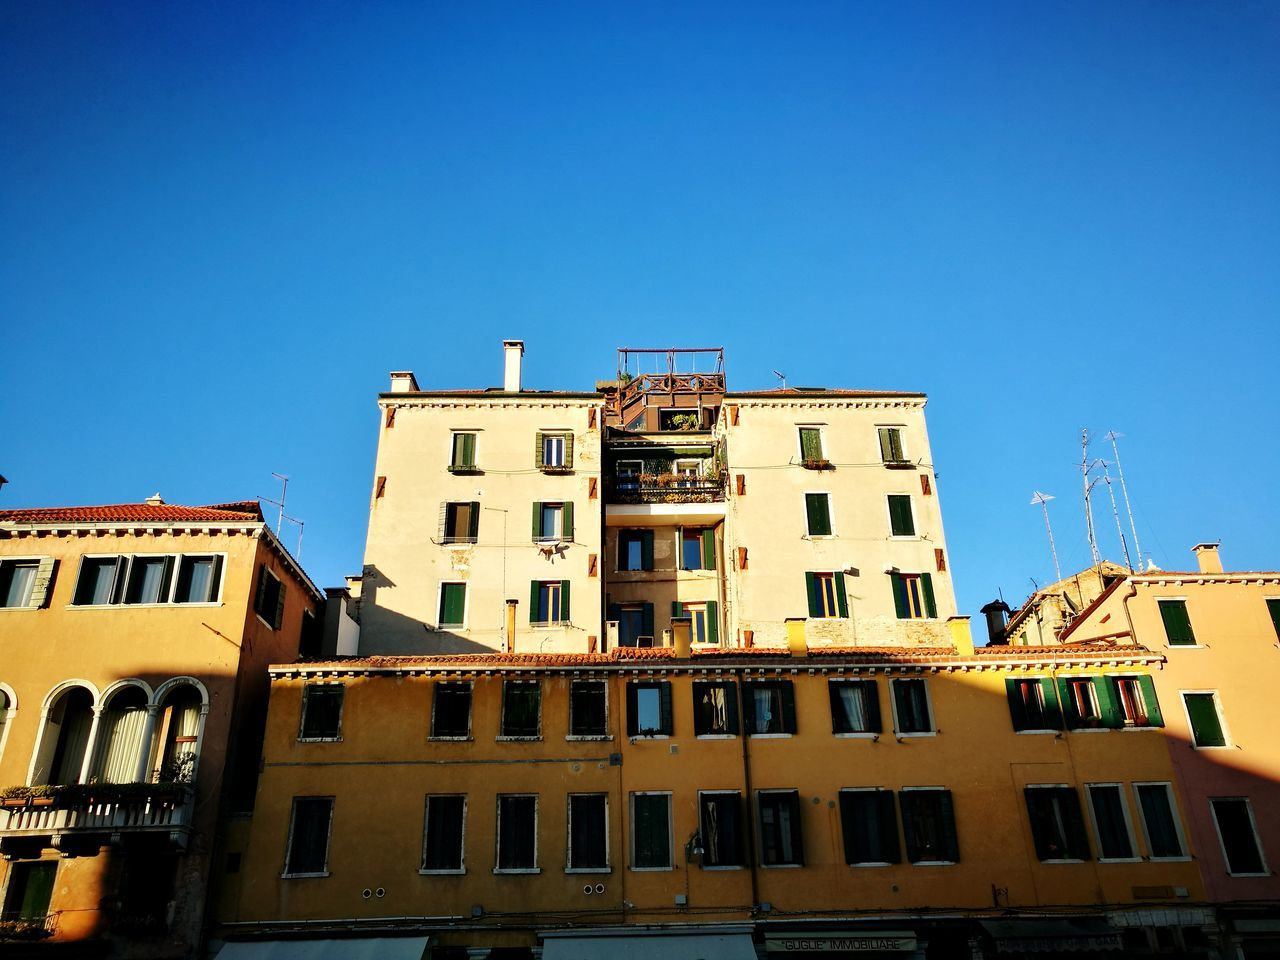 architecture, building exterior, built structure, window, clear sky, low angle view, residential building, blue, outdoors, day, balcony, no people, construction site, sky, city